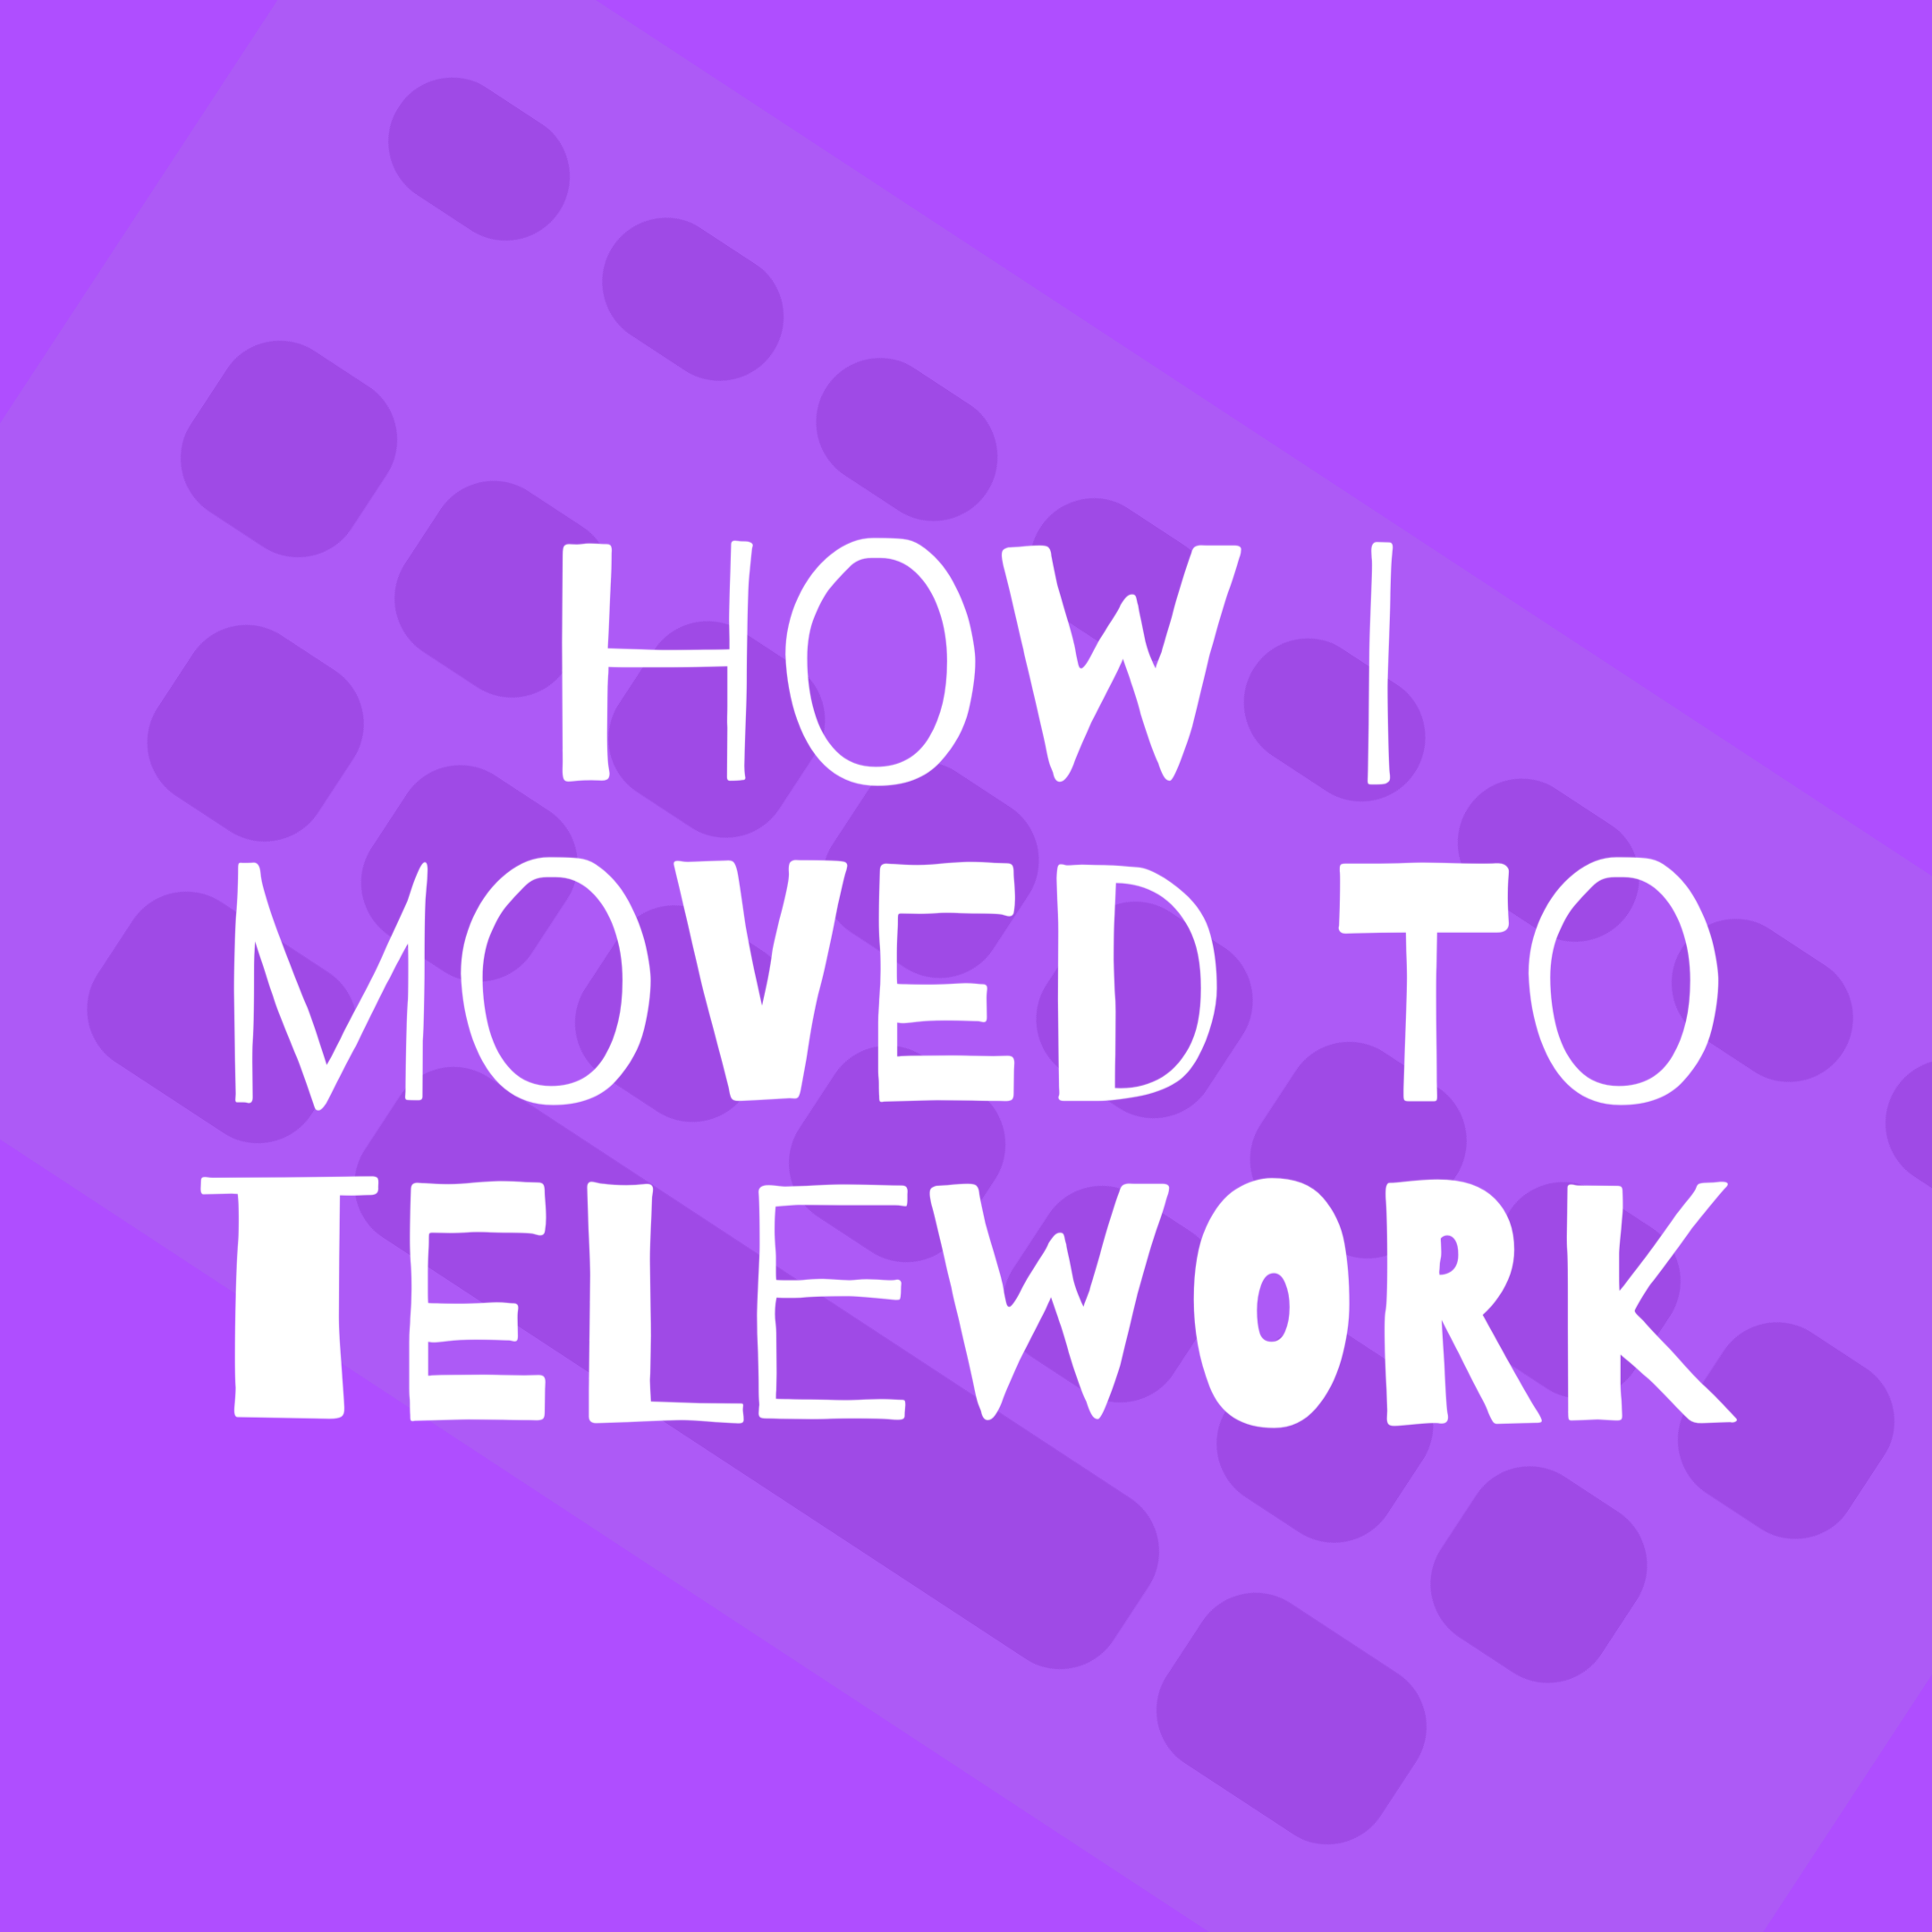 how i moved to telework white letters on purple bacground